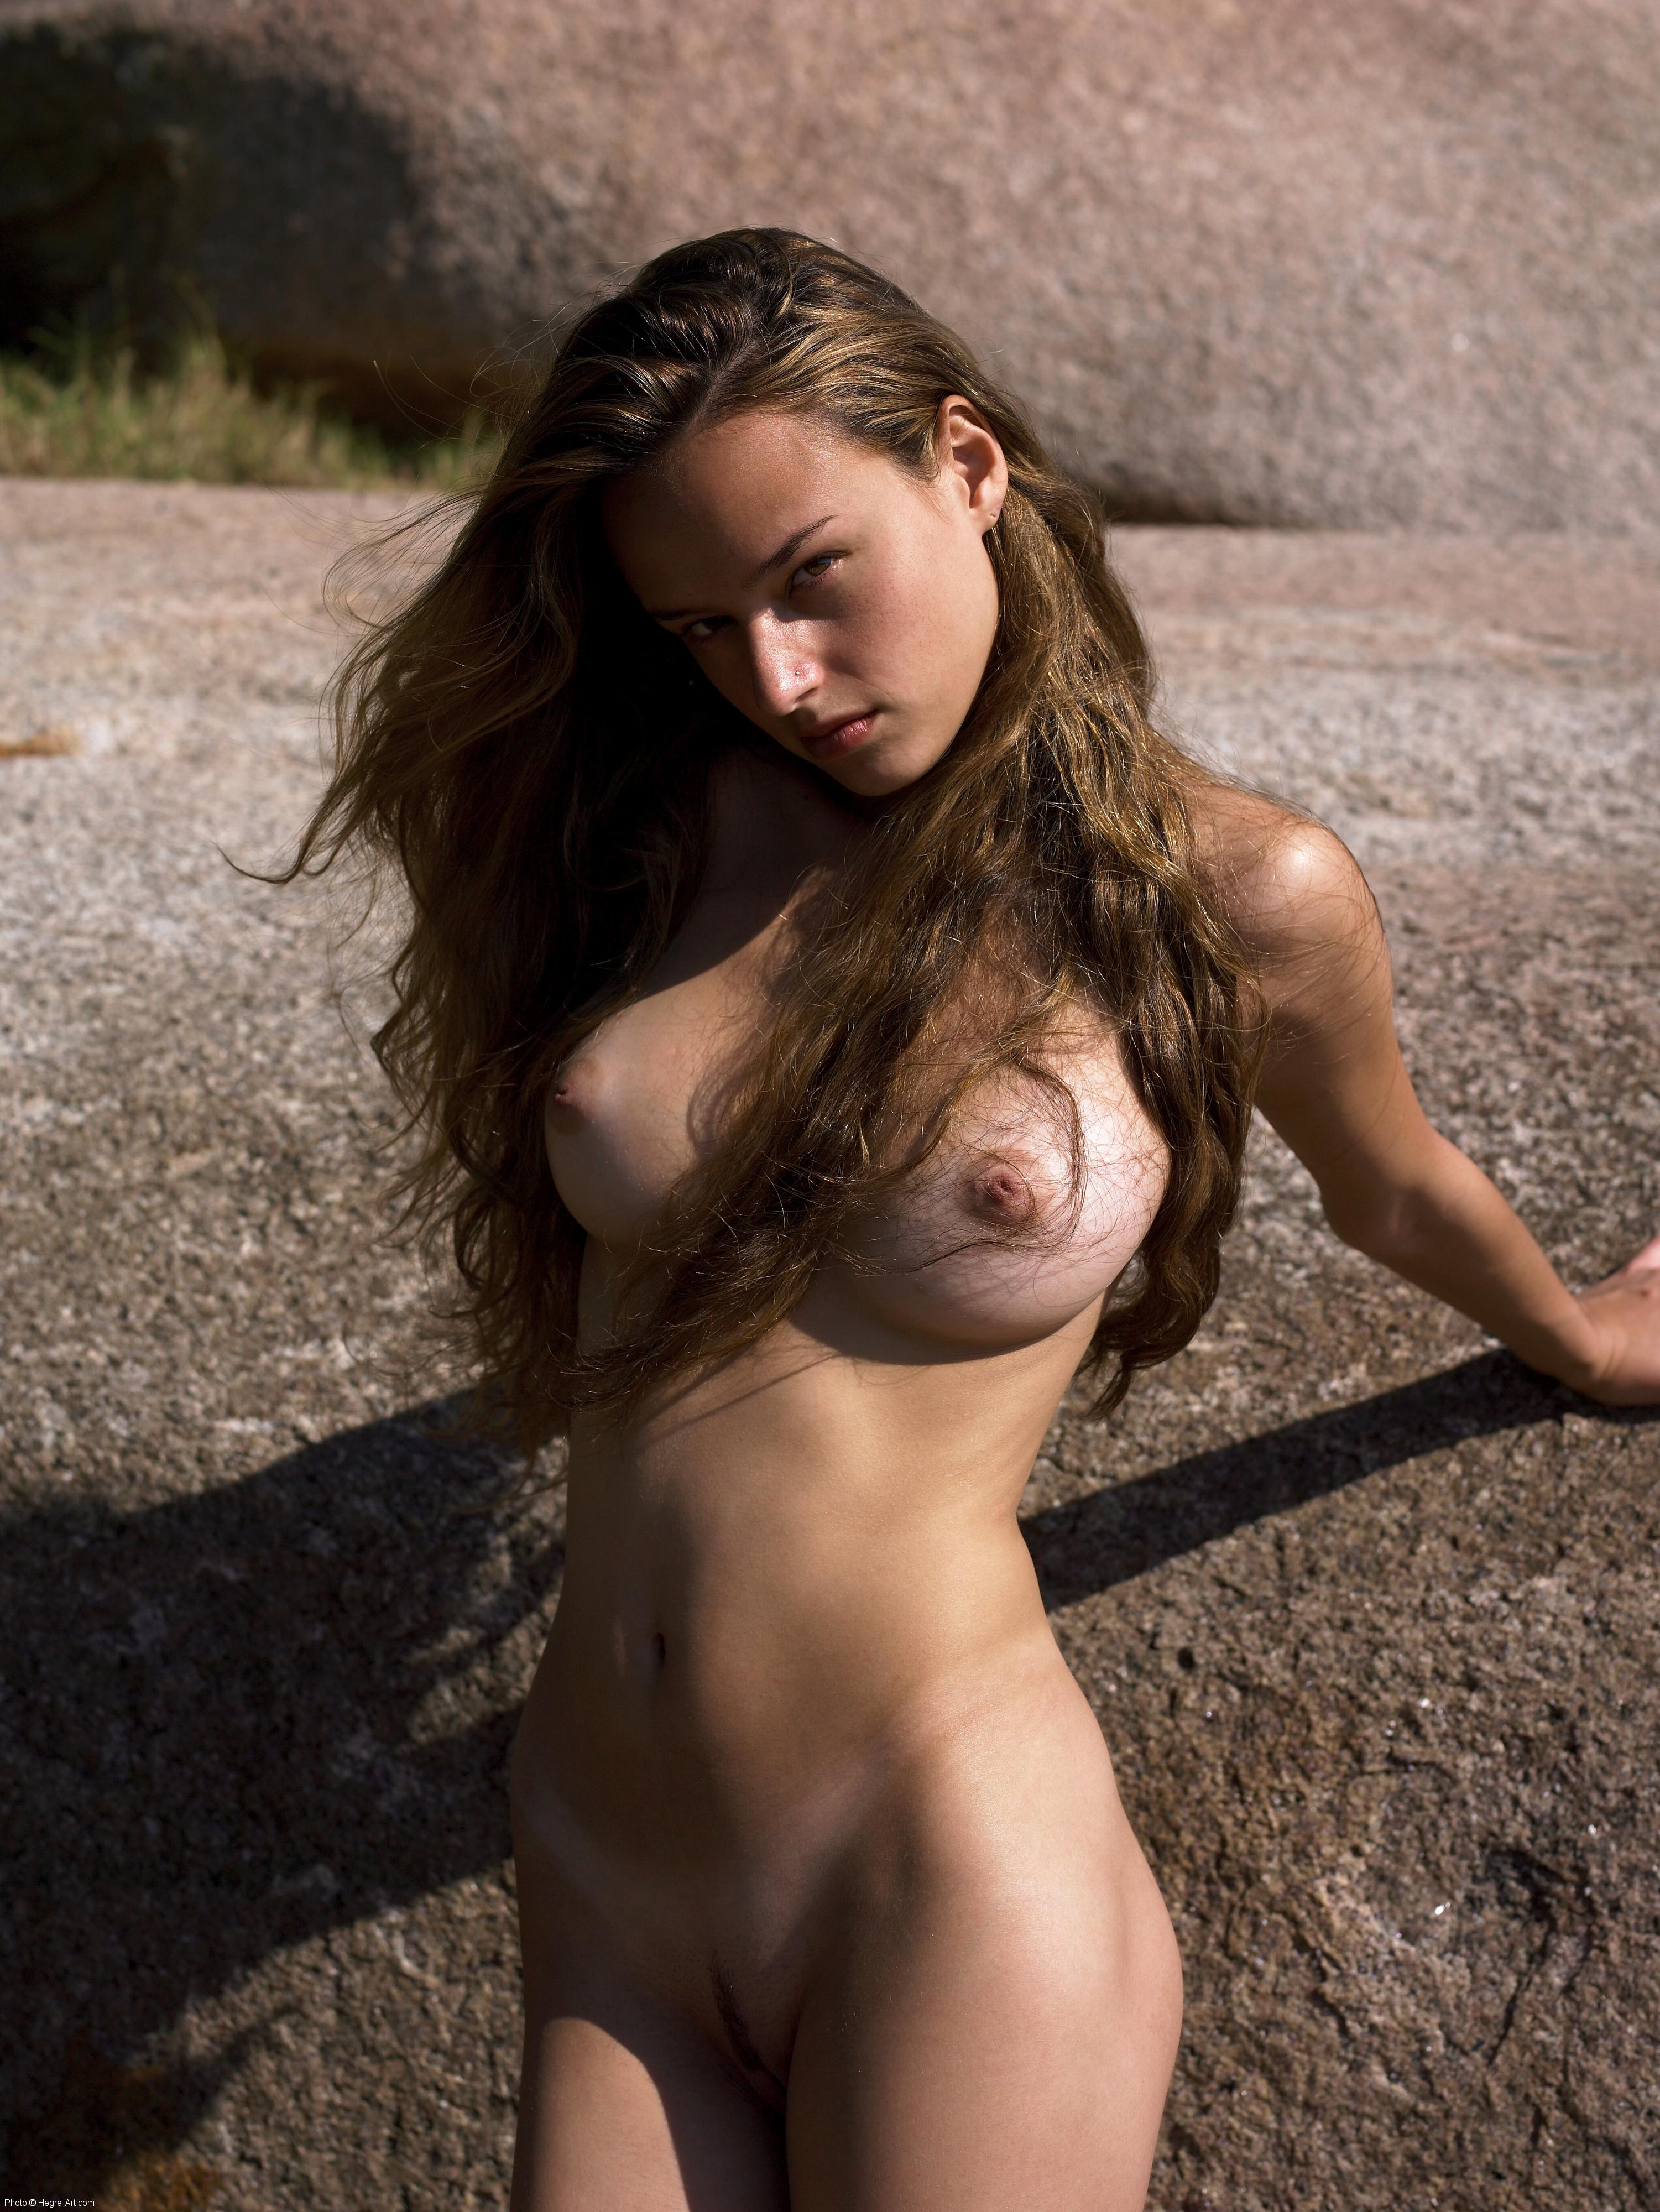 The naked pics of the high resolution